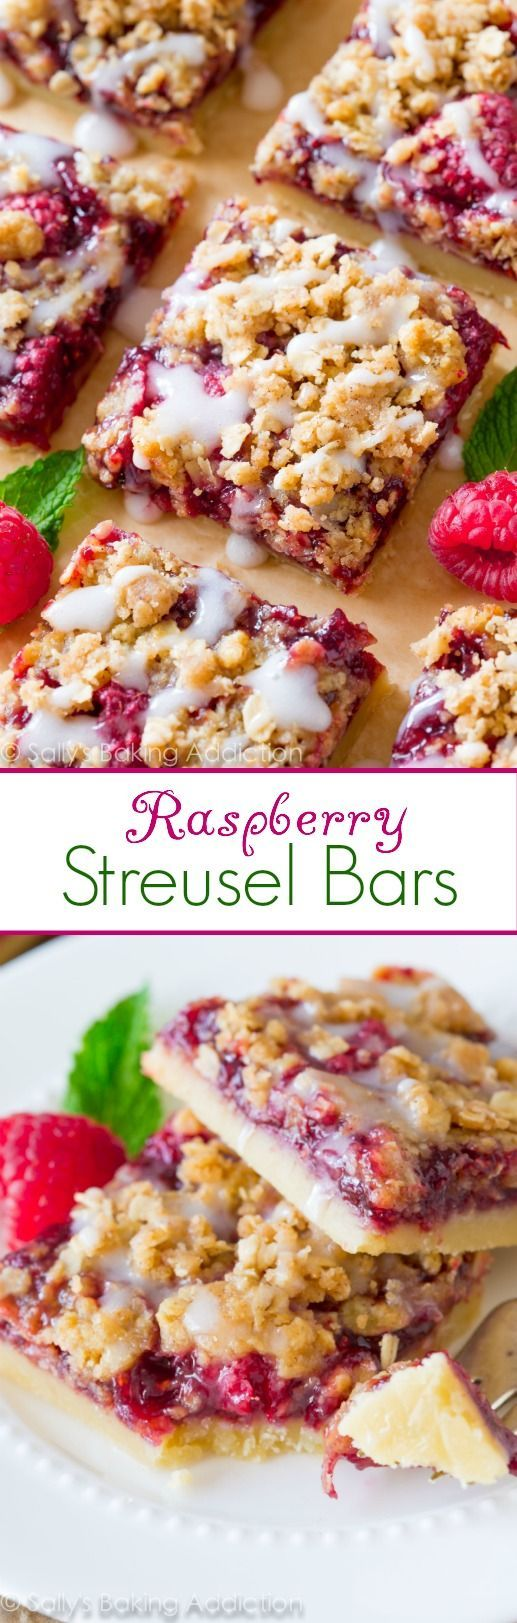 Vegan Raspberry Streusel Bars Recipe — Dishmaps